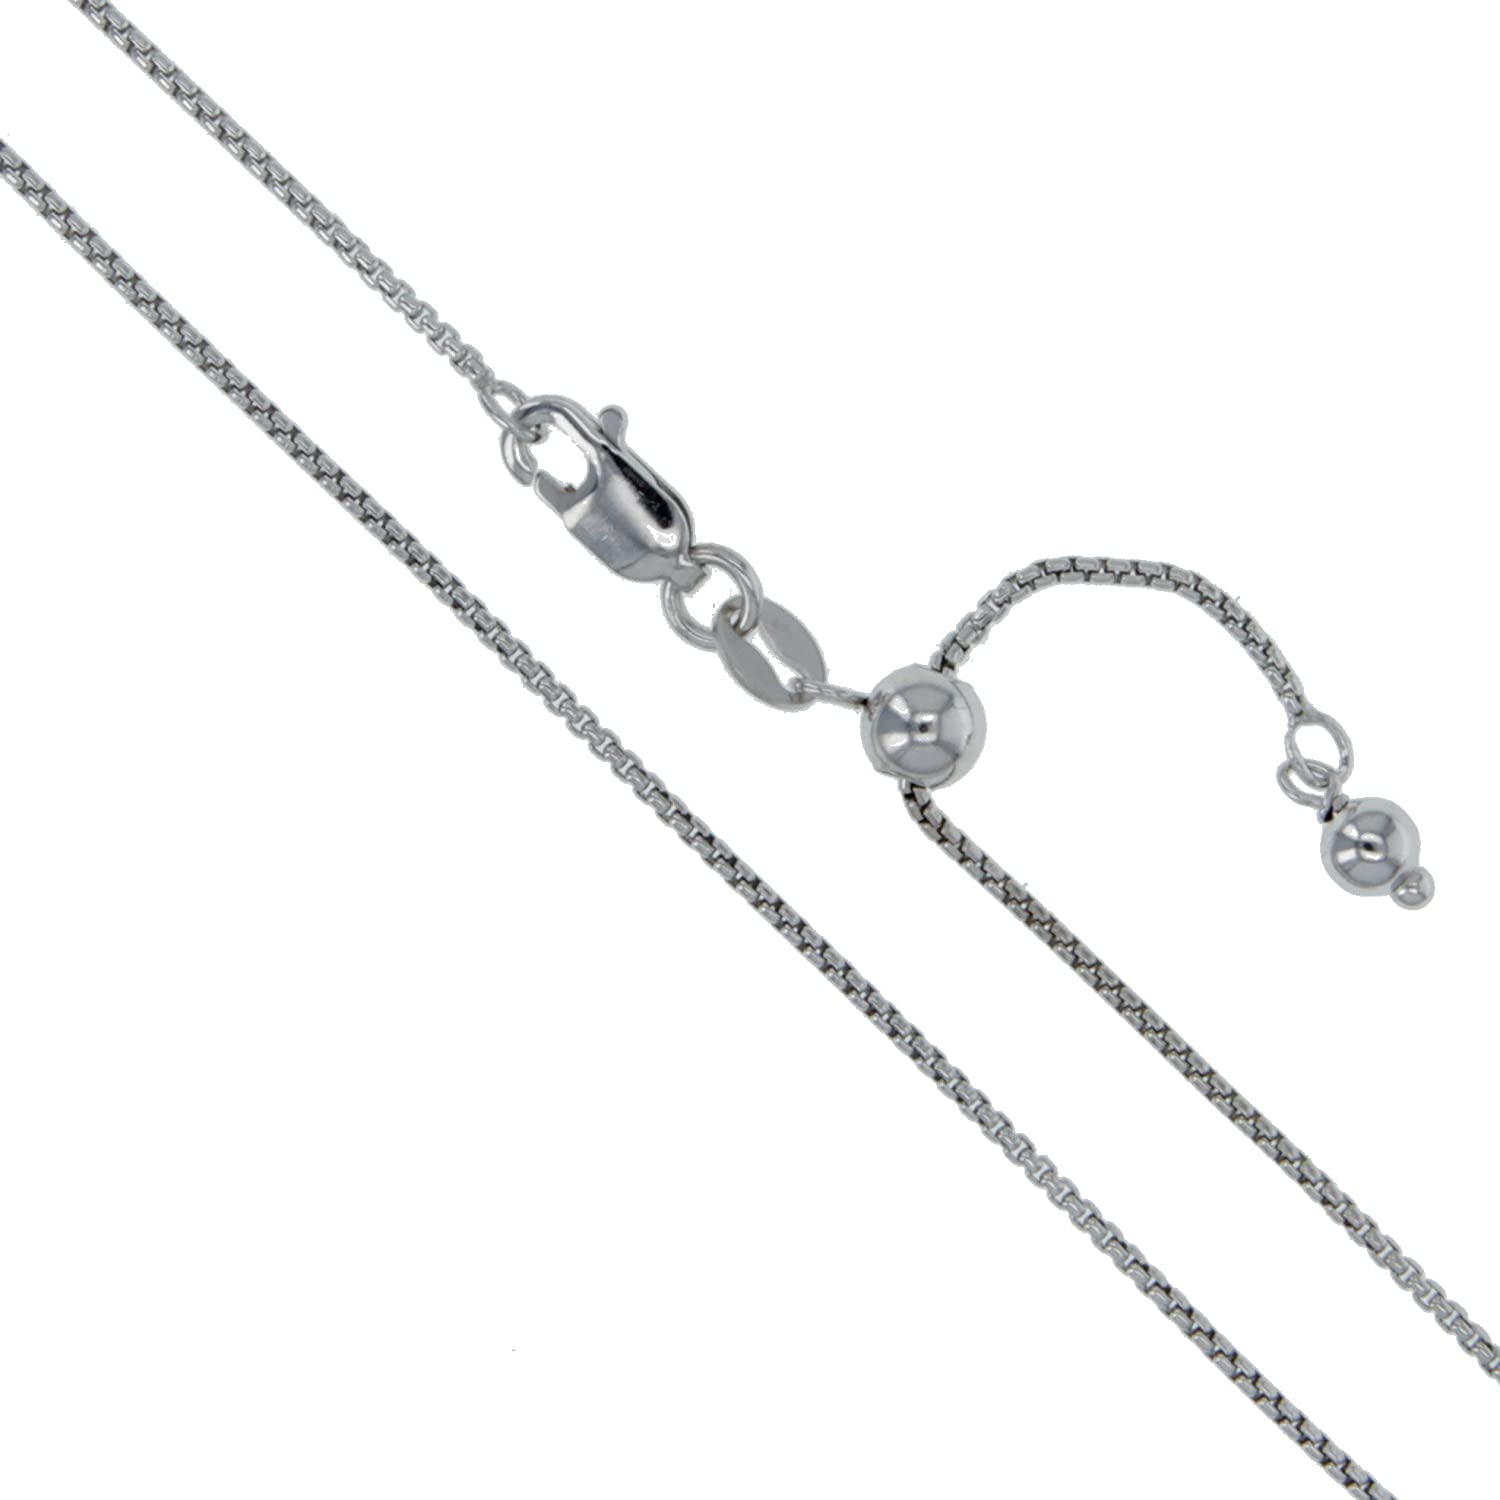 1 Necklace Extender Plated in Genuine Rhodium Plated